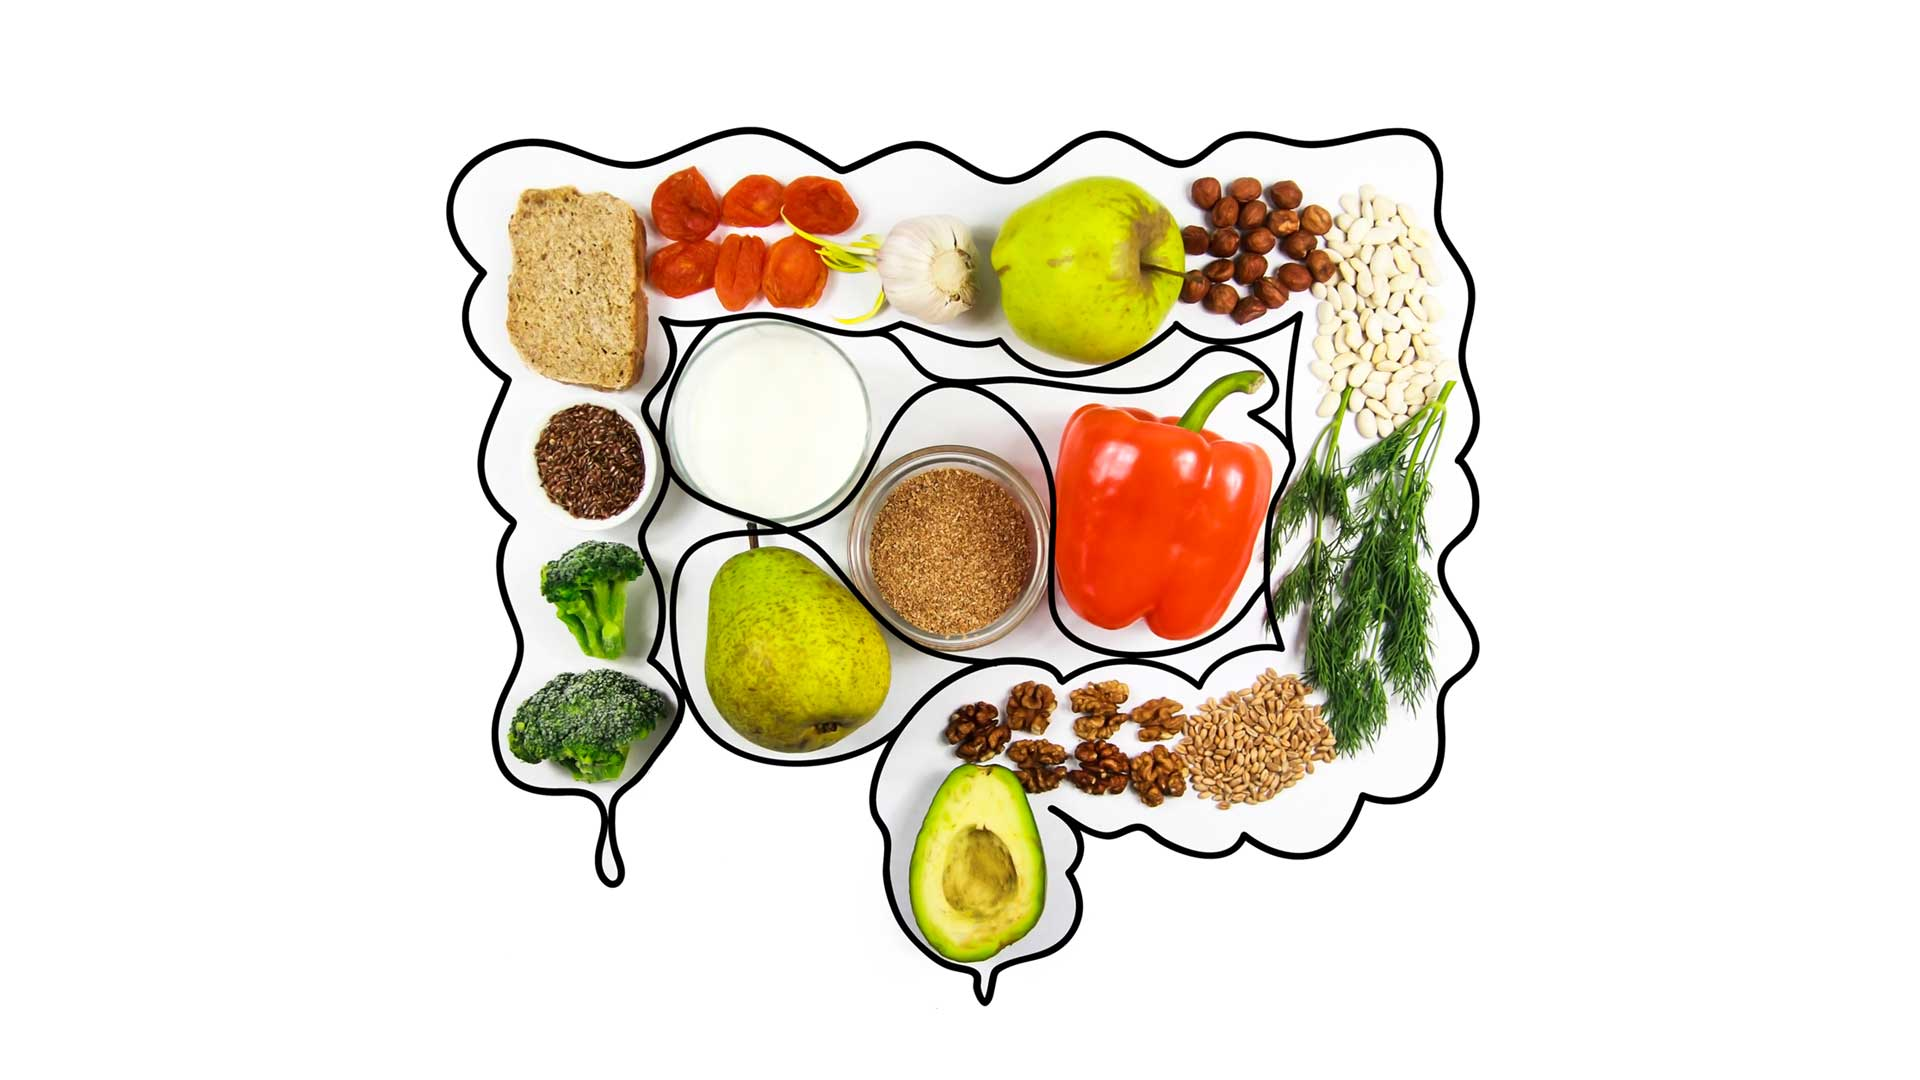 A selection of colourful, healthy food arranged in the shape of a bowel